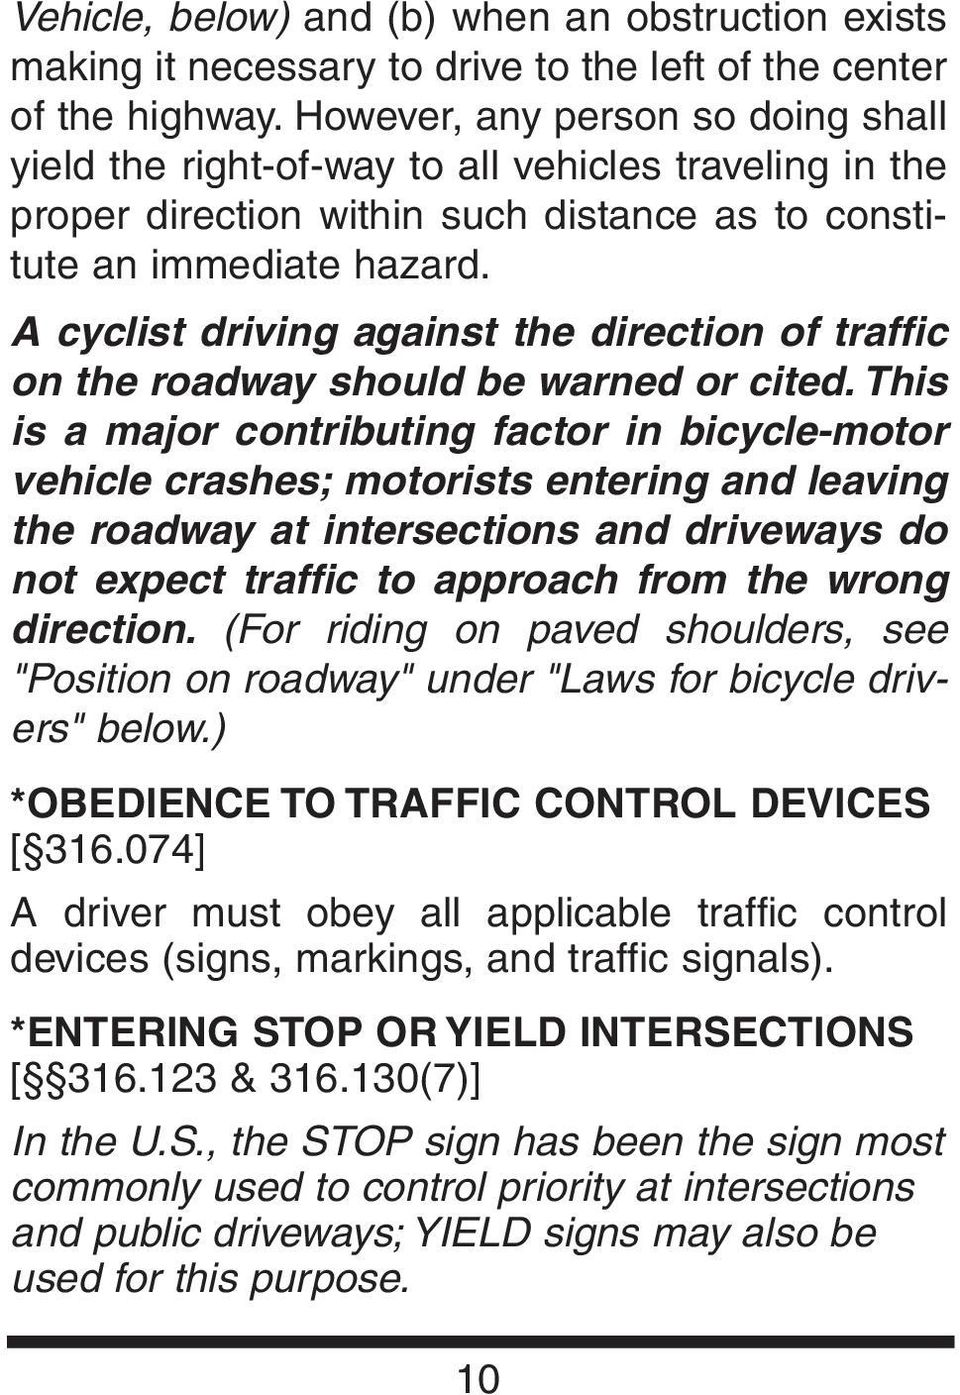 A cyclist driving against the direction of traffic on the roadway should be warned or cited.